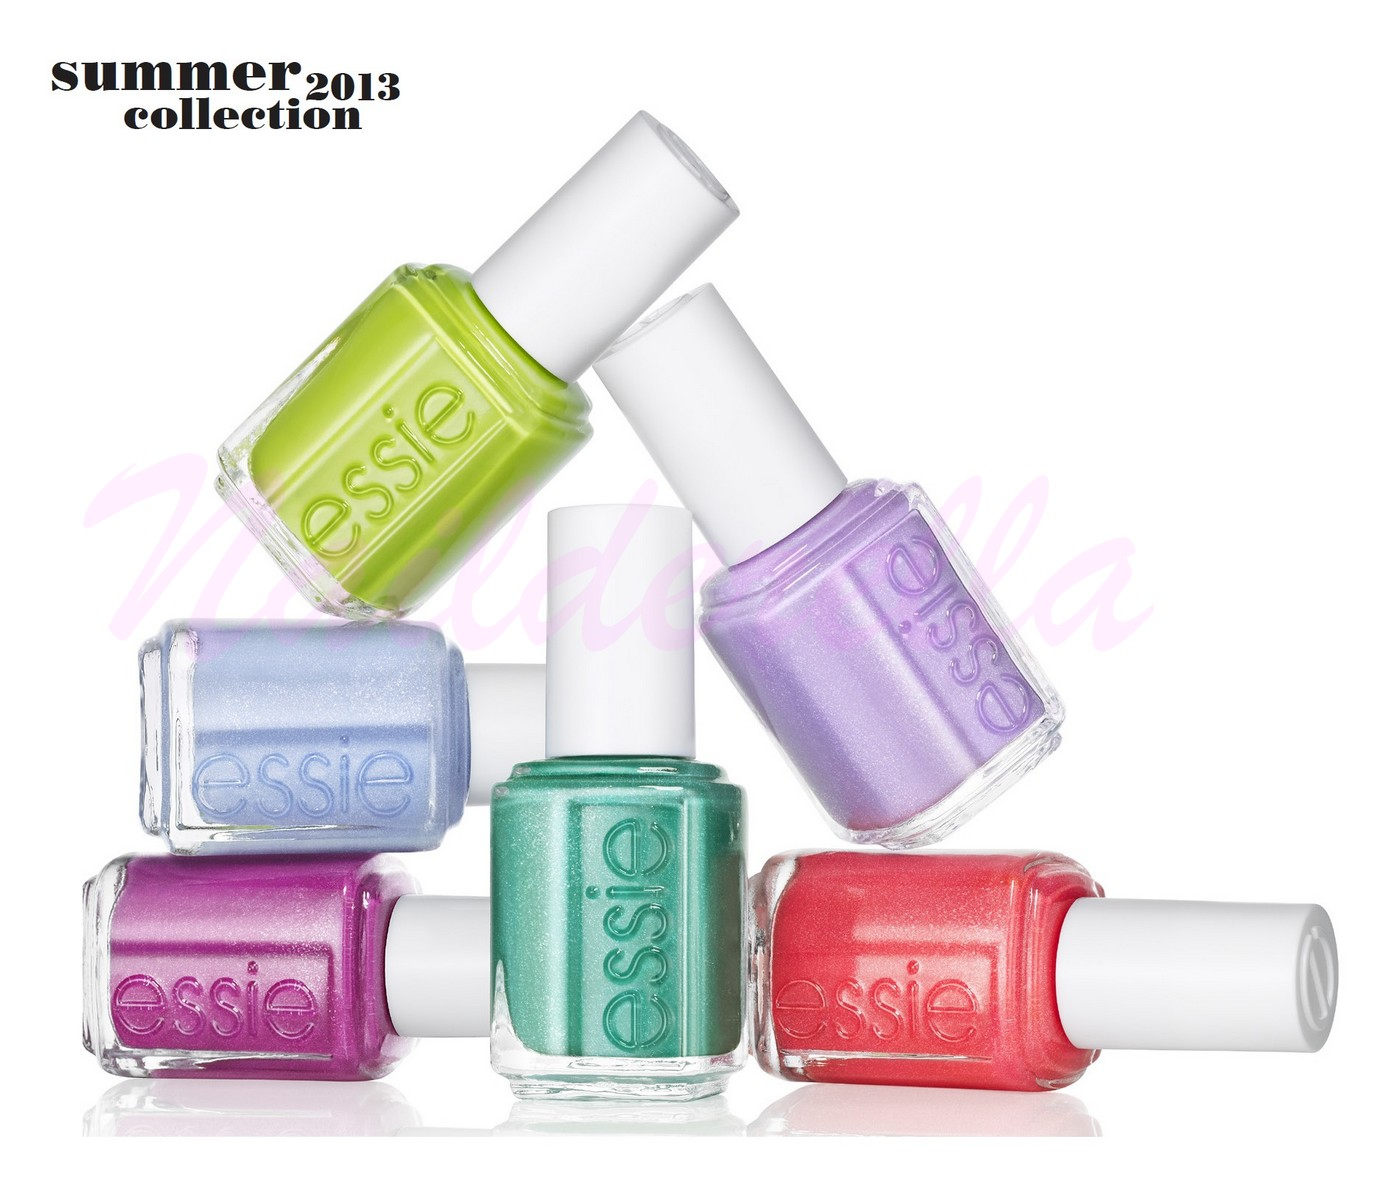 New Essie collections for Summer 2013 - Nailderella